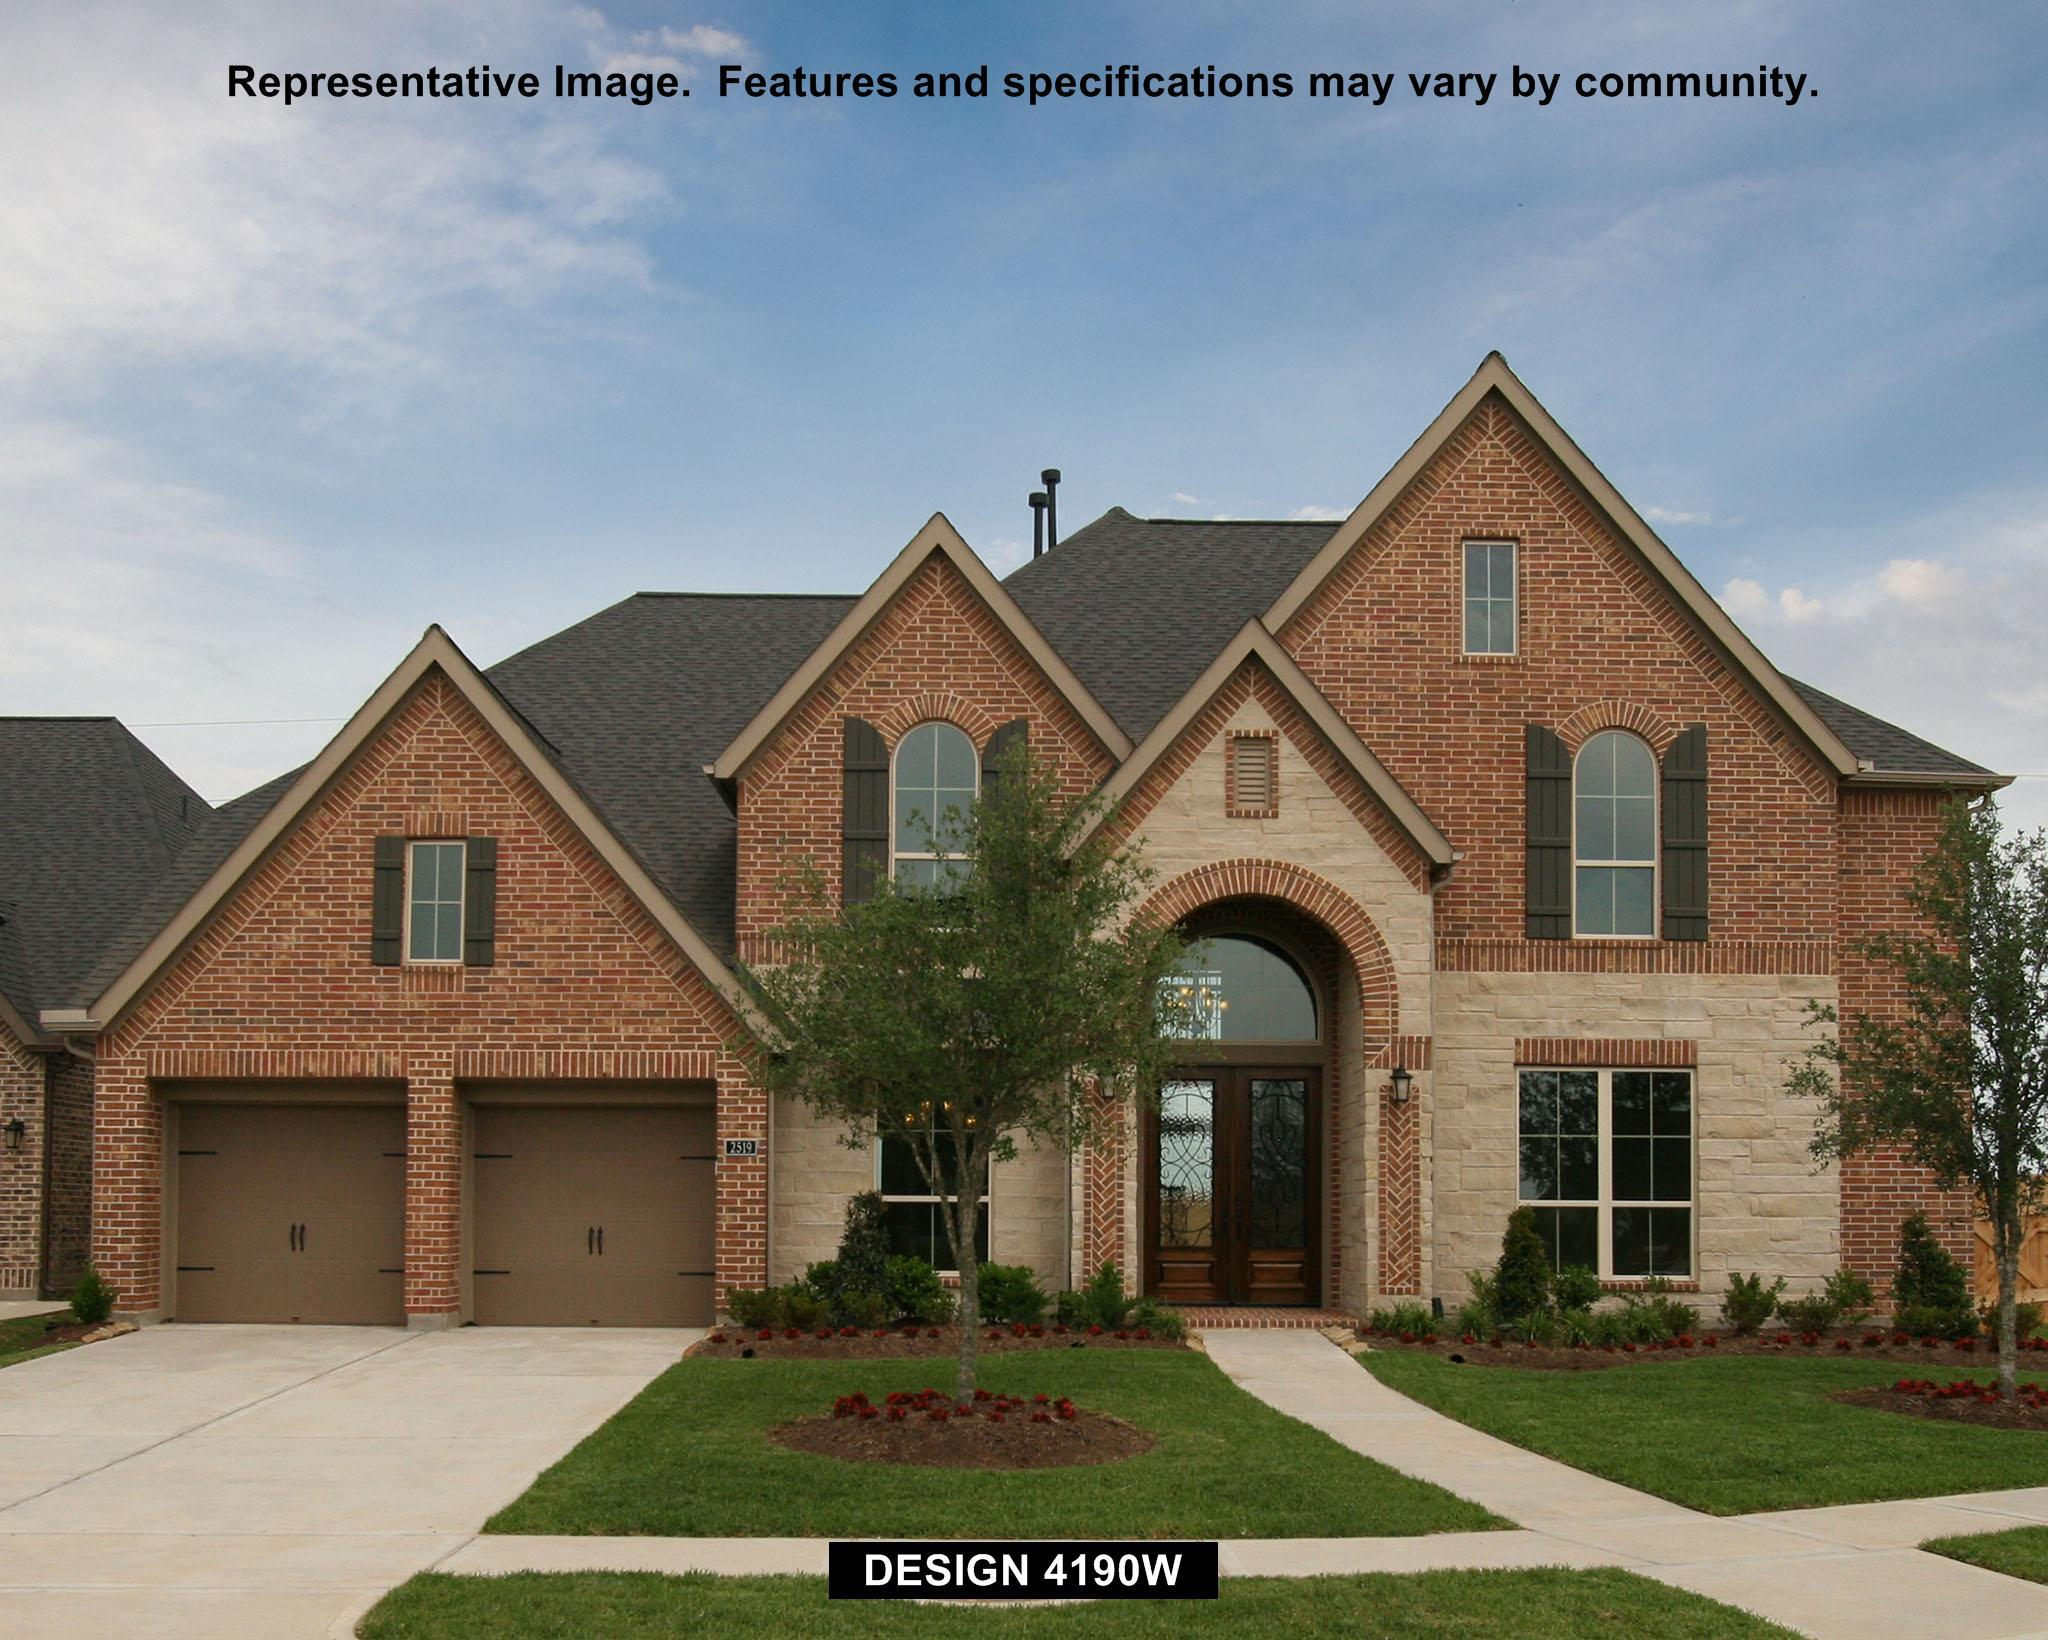 Single Family for Sale at Meridiana 70' - 4190w 9815 Bell Court Iowa Colony, Texas 77583 United States